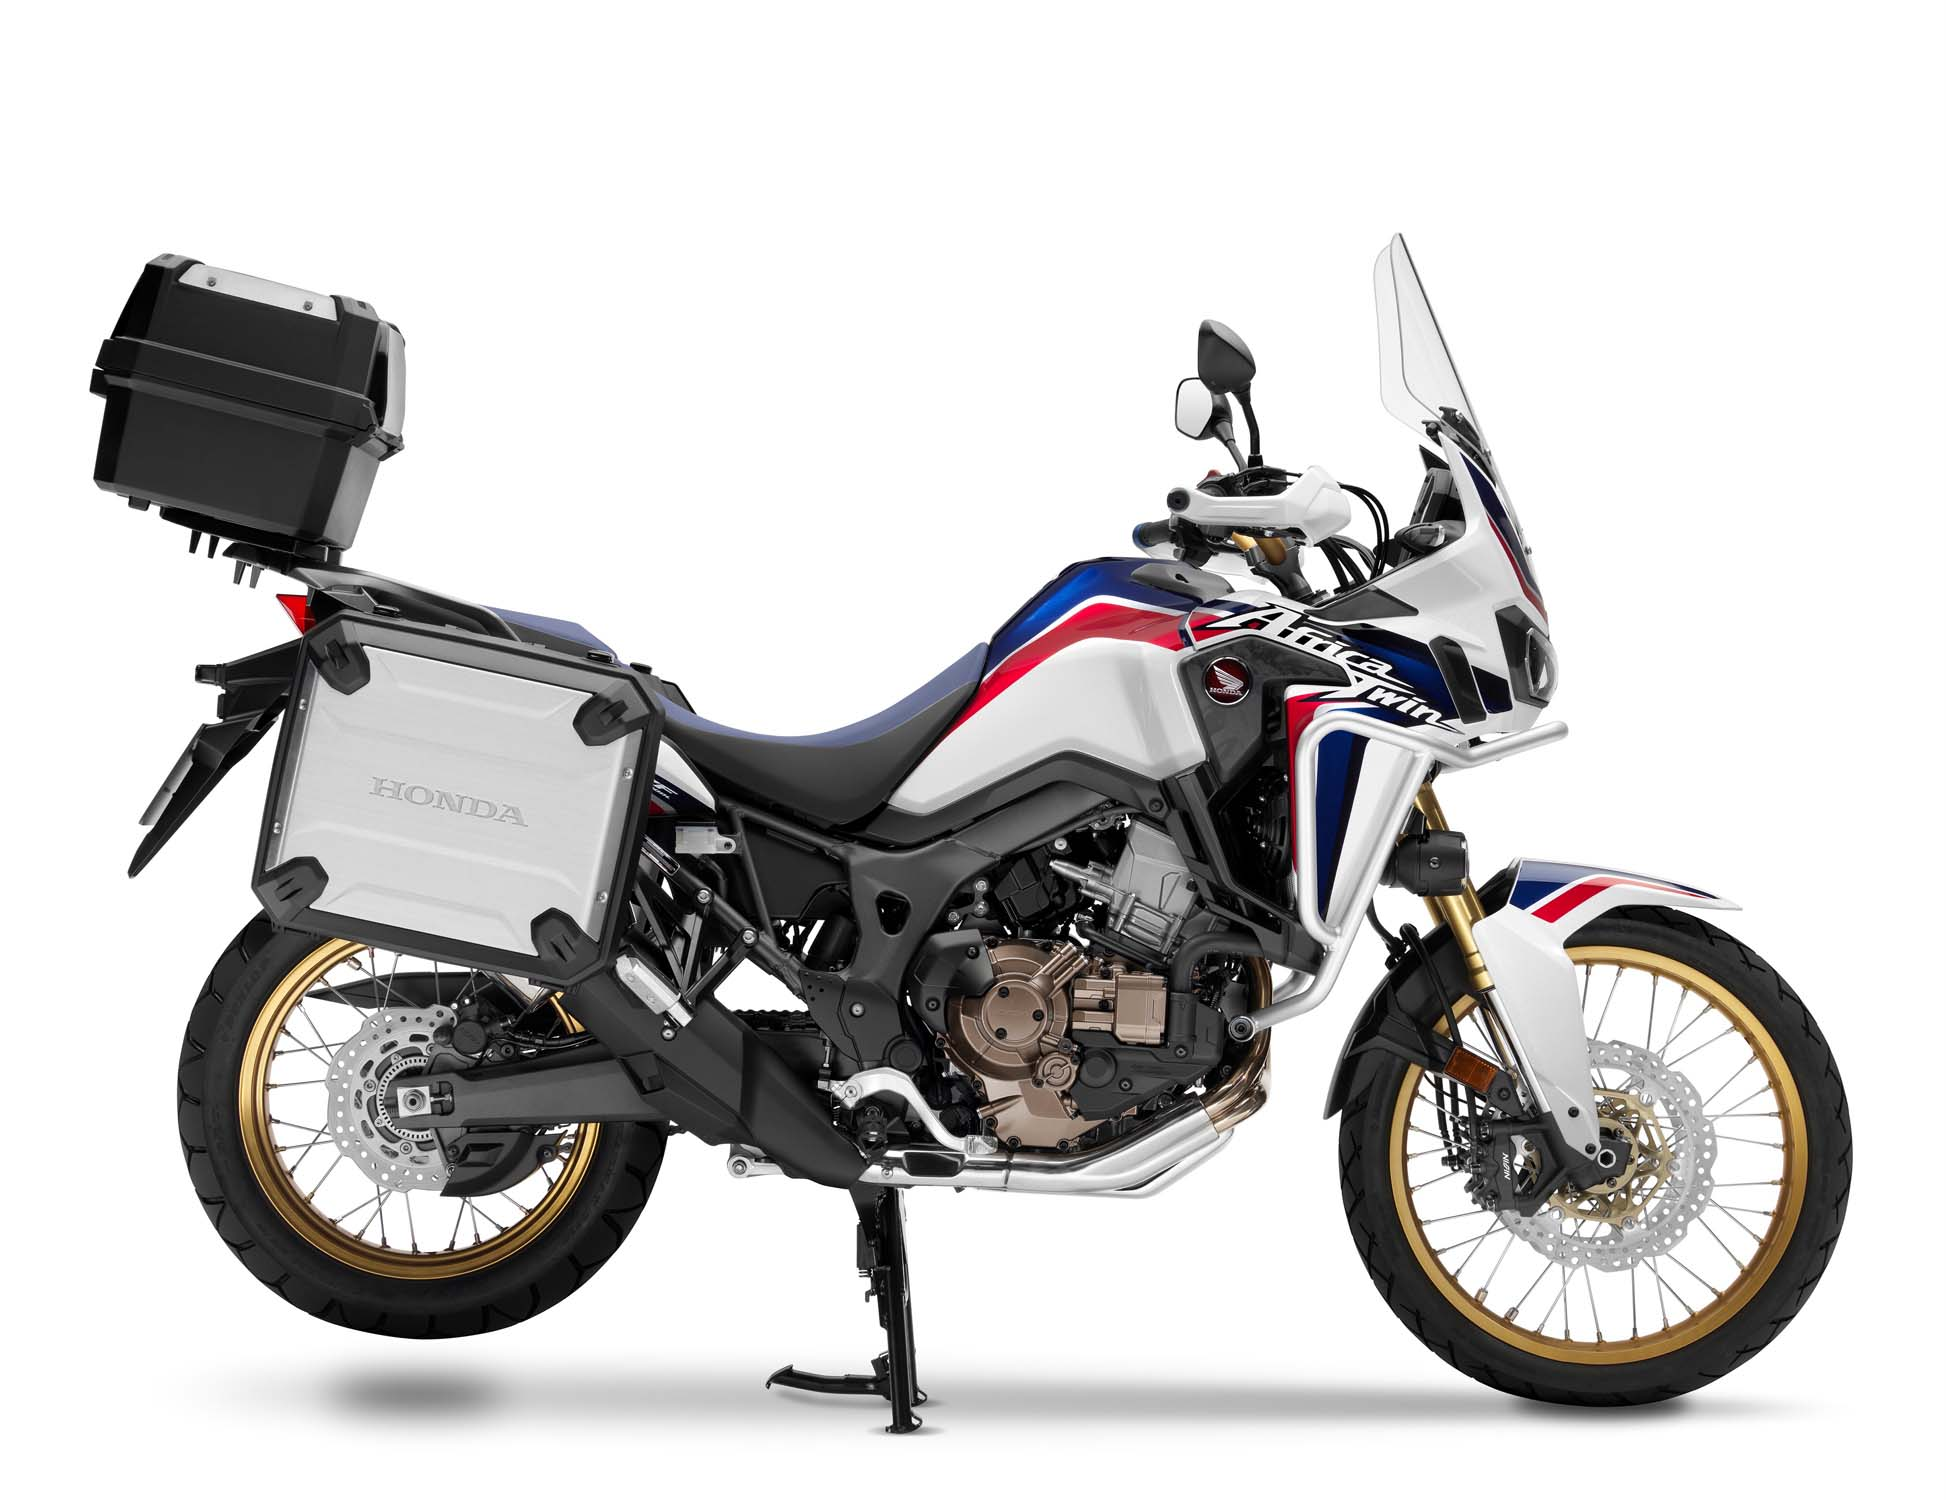 motorrad occasion honda crf1000l africa twin kaufen. Black Bedroom Furniture Sets. Home Design Ideas